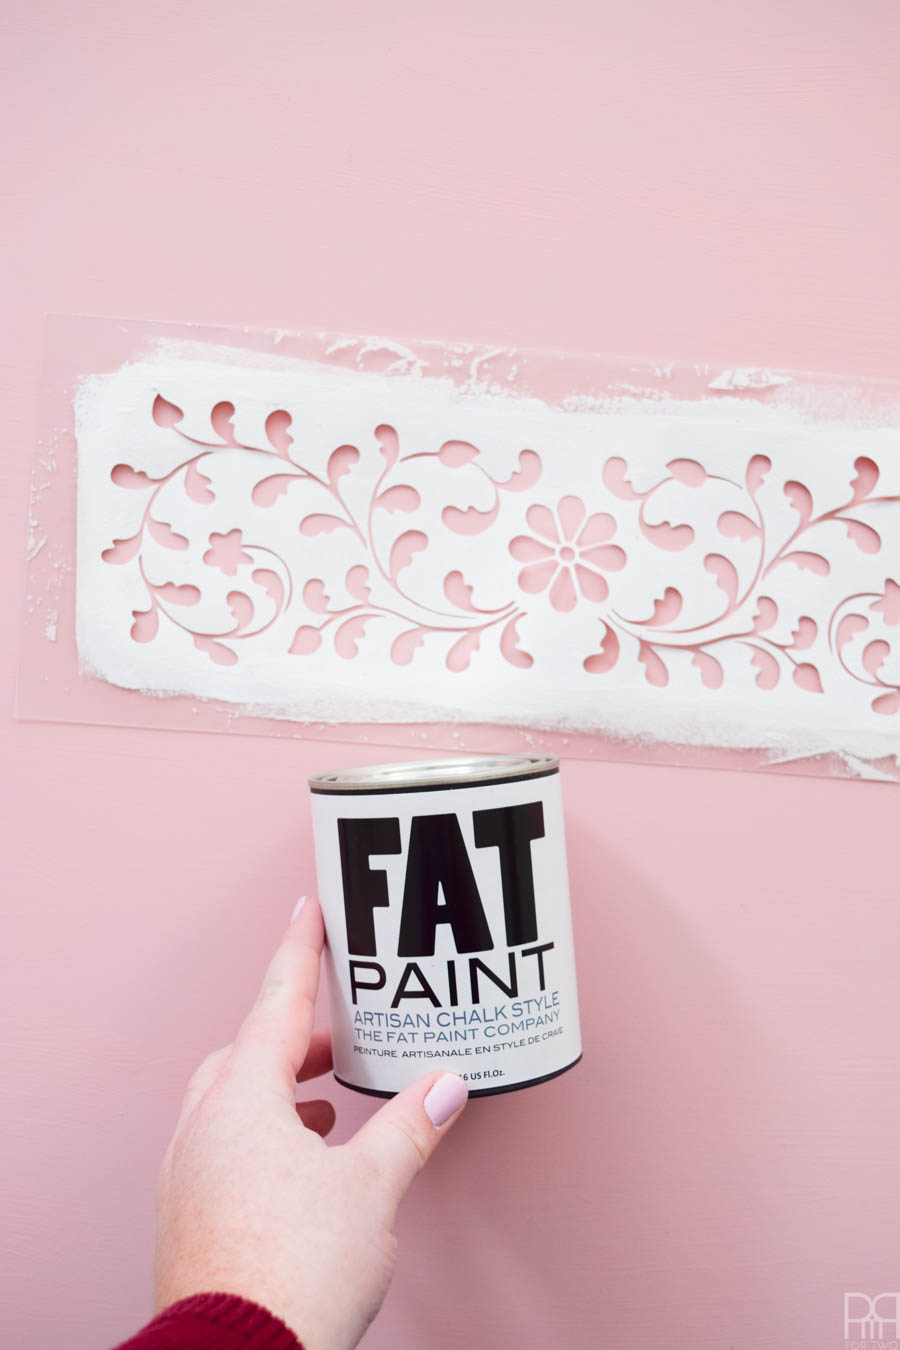 Paint yourself a DIY Bone Inlay Coffee Table using the most luxurious chalk paint you can find. FAT Paint goes on smoothly and is a dream to stencil with. Come see how I got it all together!